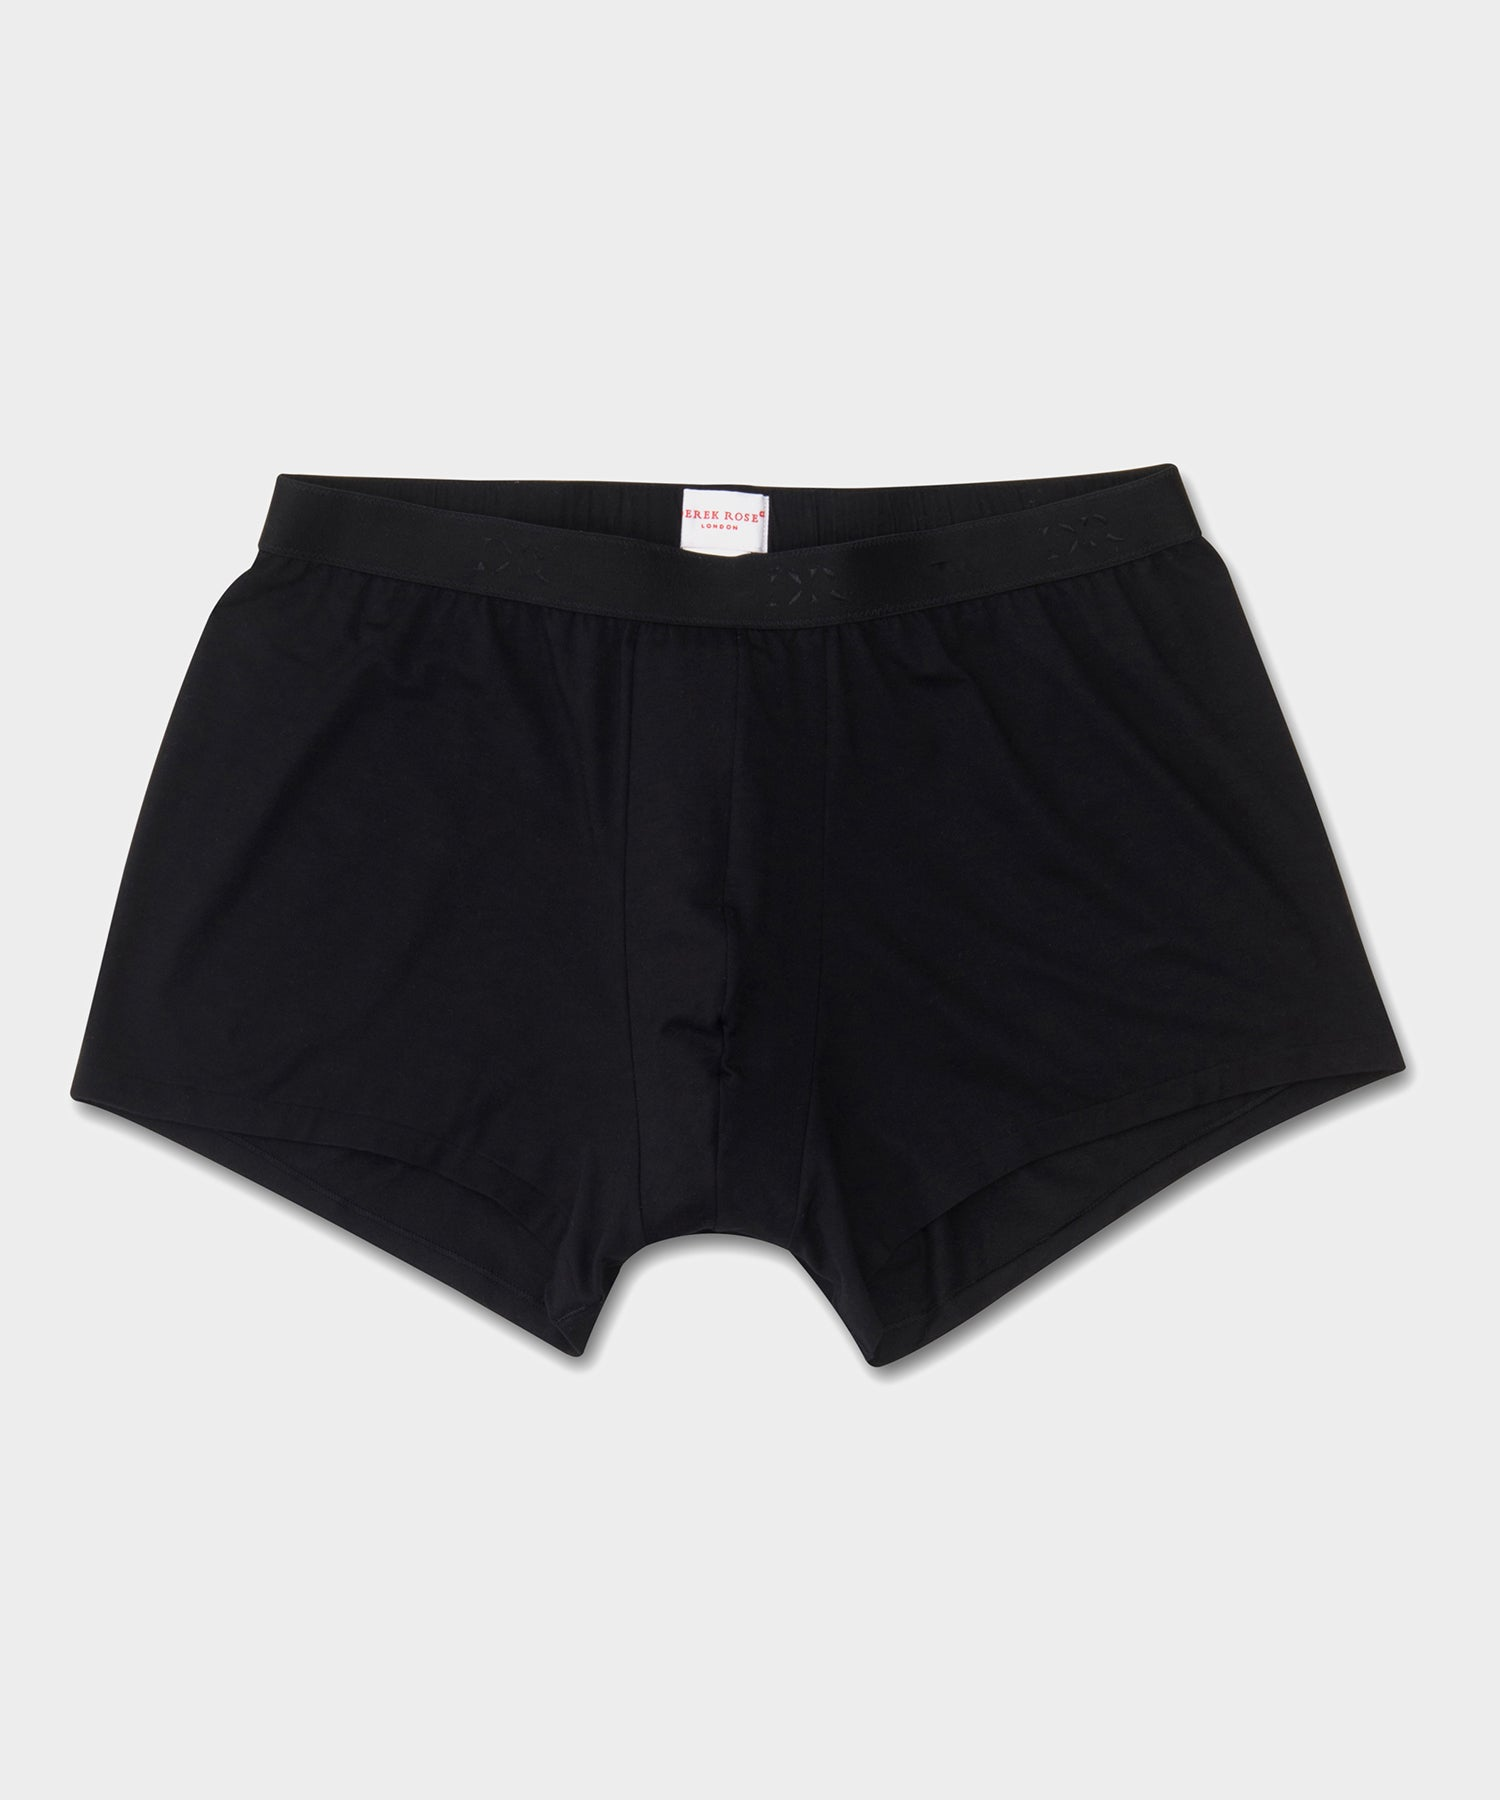 Derek Rose Alex Black Men's Boxer Briefs